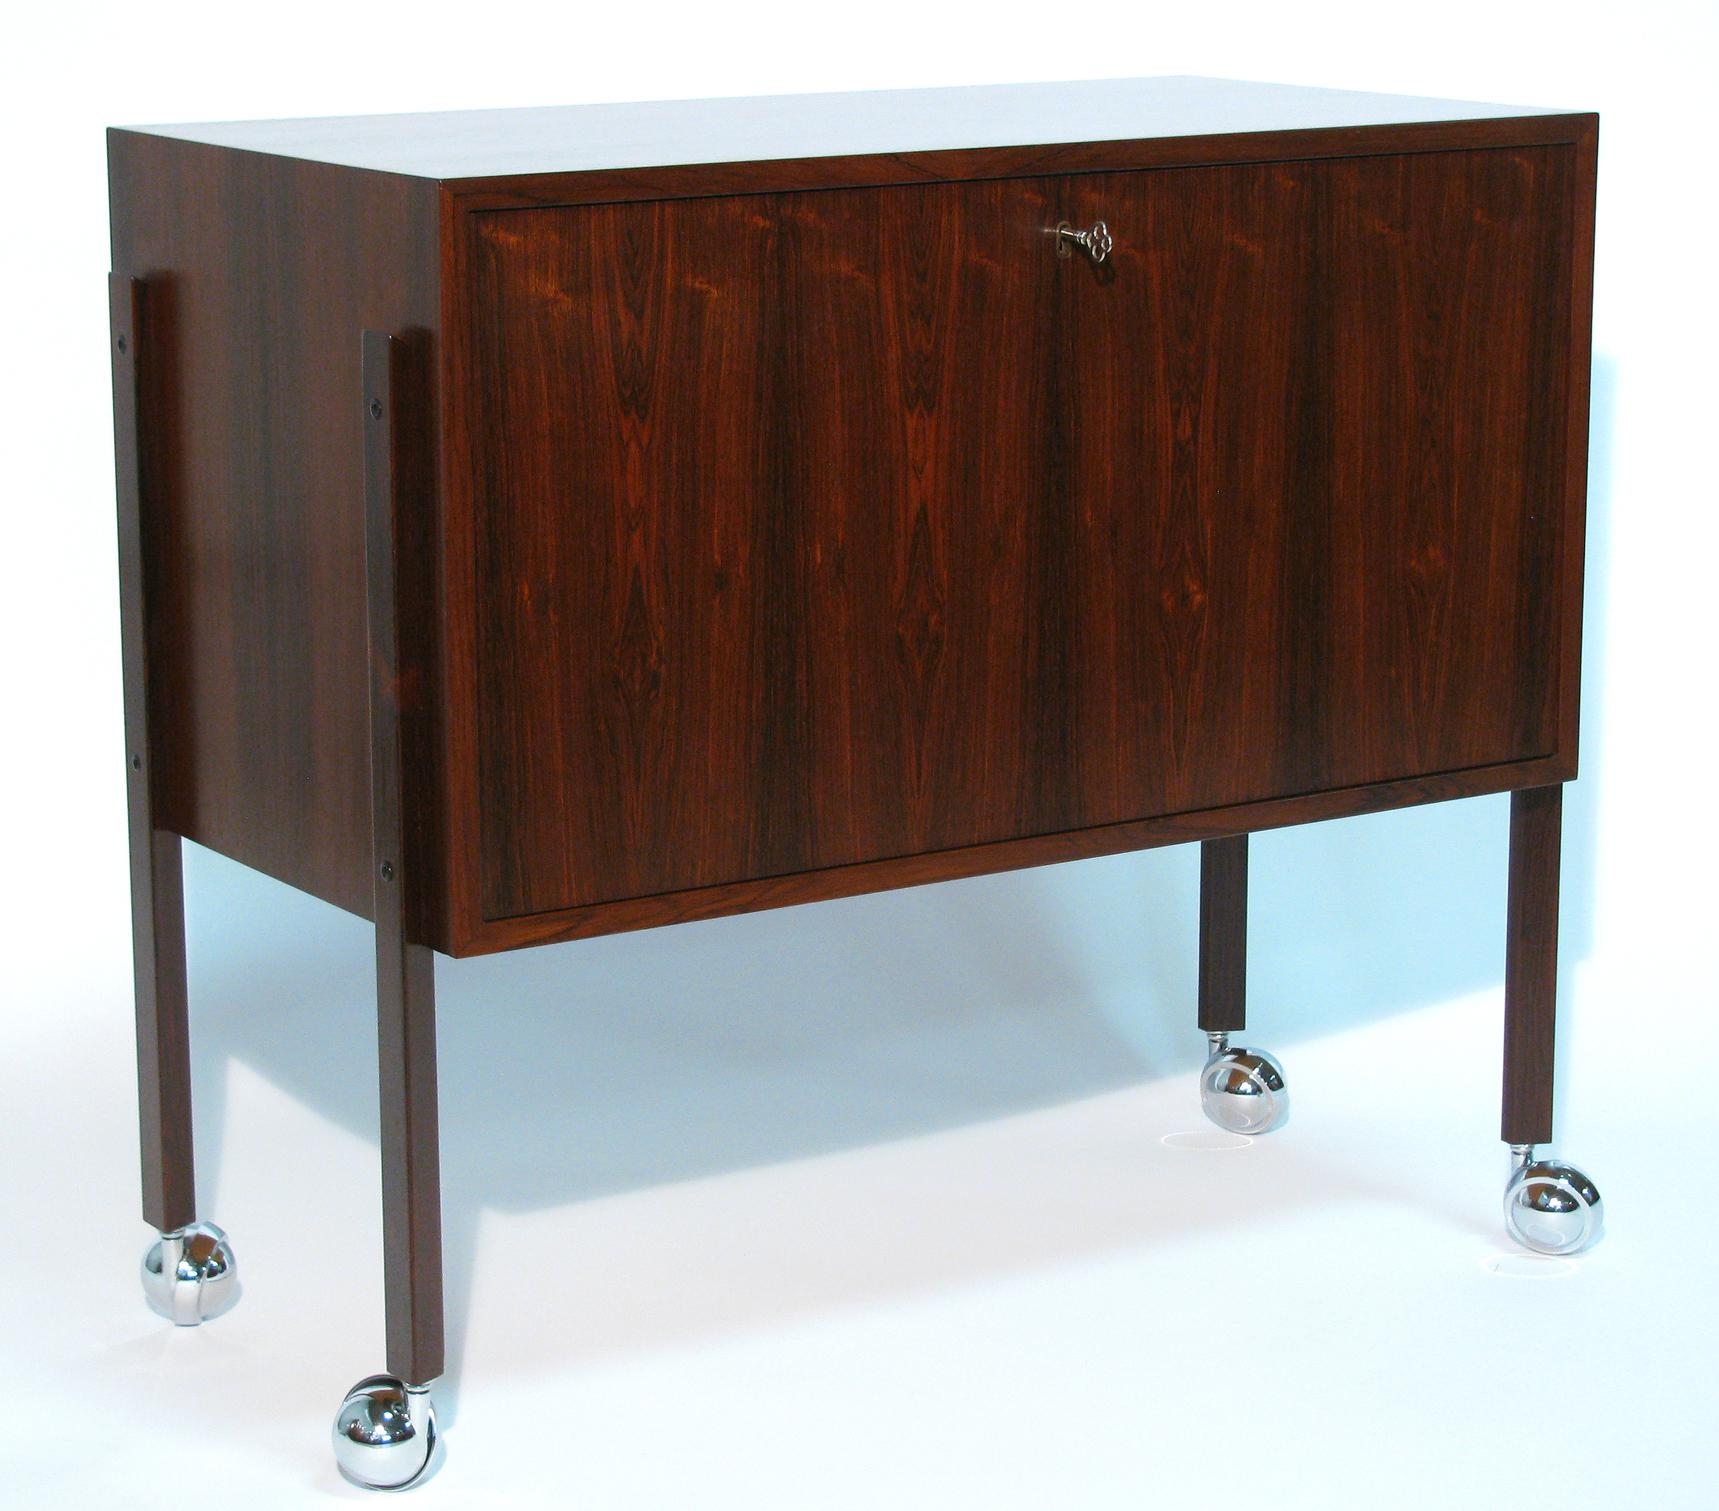 Charmant Danish Modernist Rosewood Lockable Bar Cabinet For Sale   Image 4 Of 9